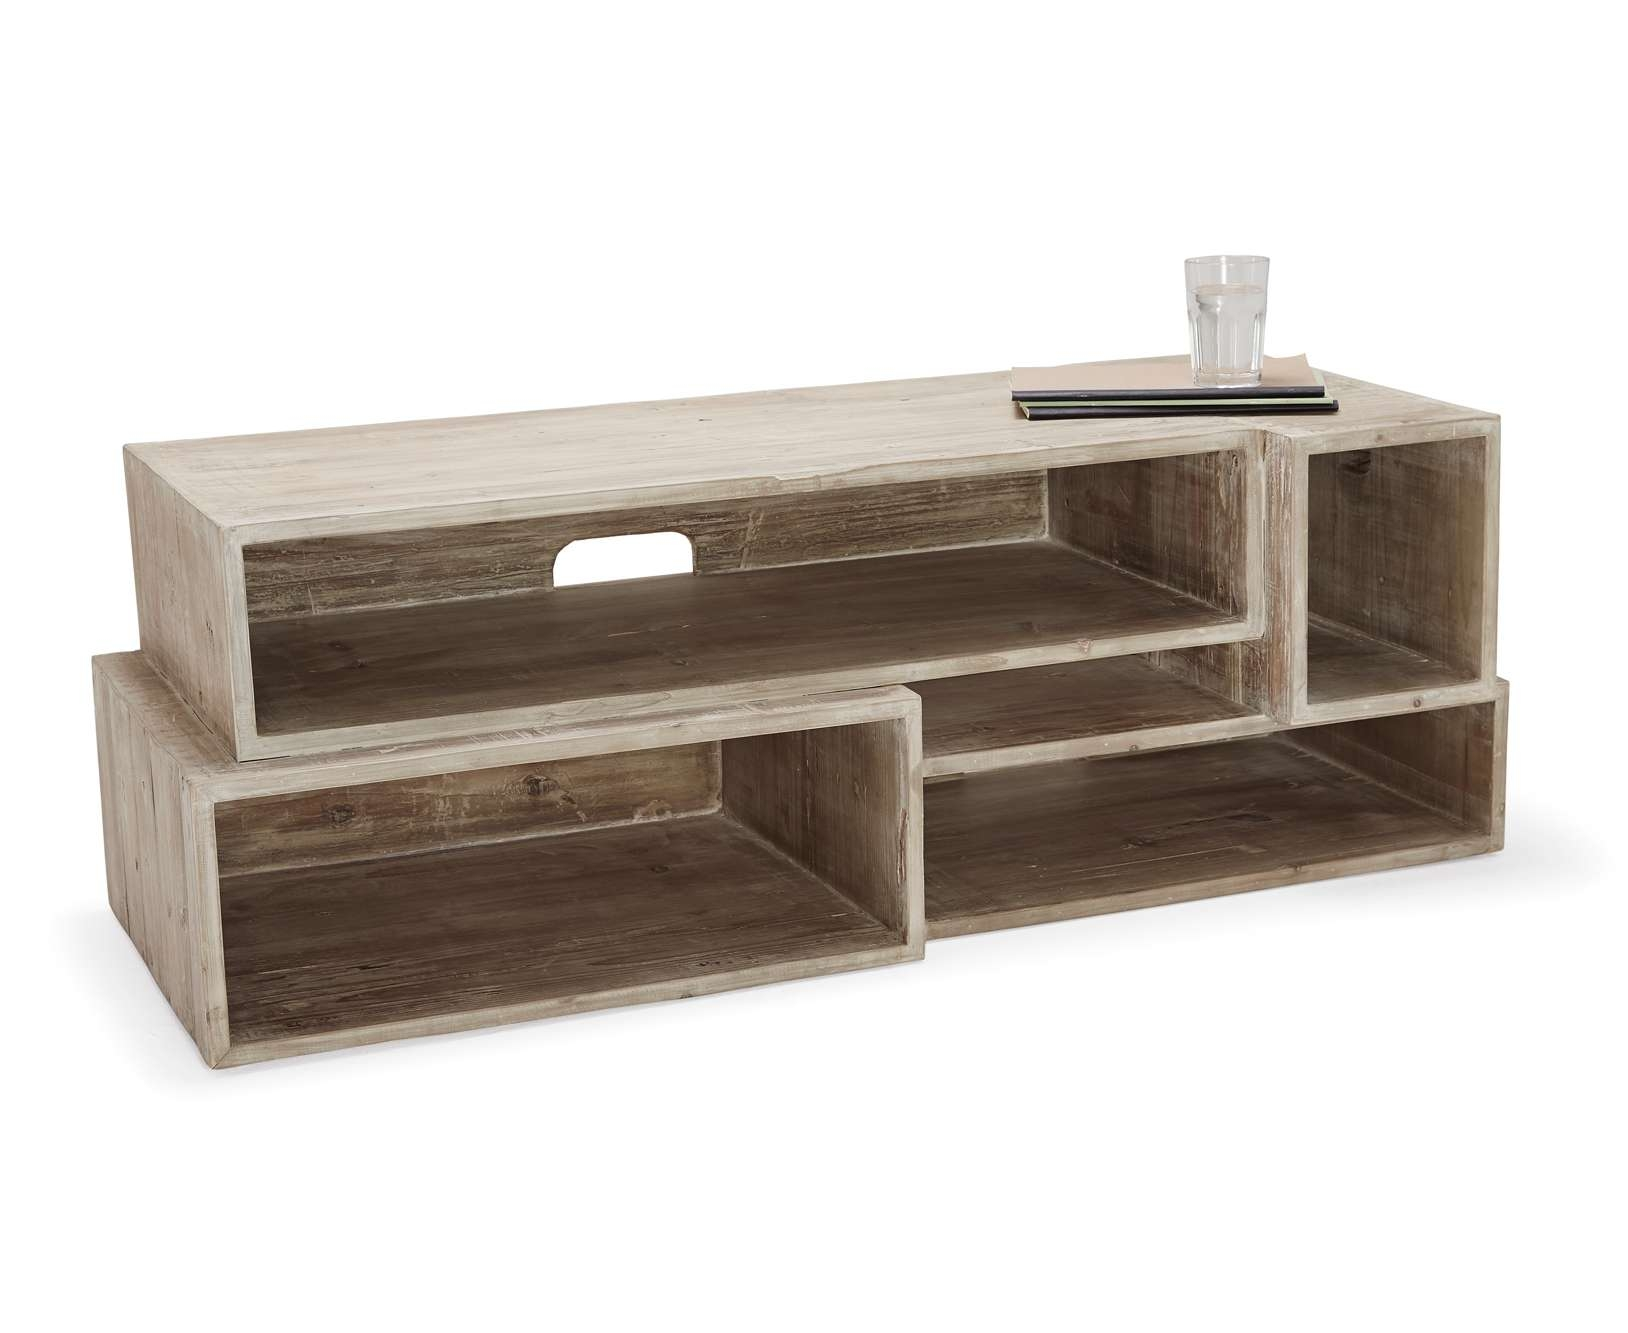 Enchanting Solid Wood Tv Stand Home Media Ideas Tv Stand Real Wood In Wooden Tv Stands (View 5 of 15)